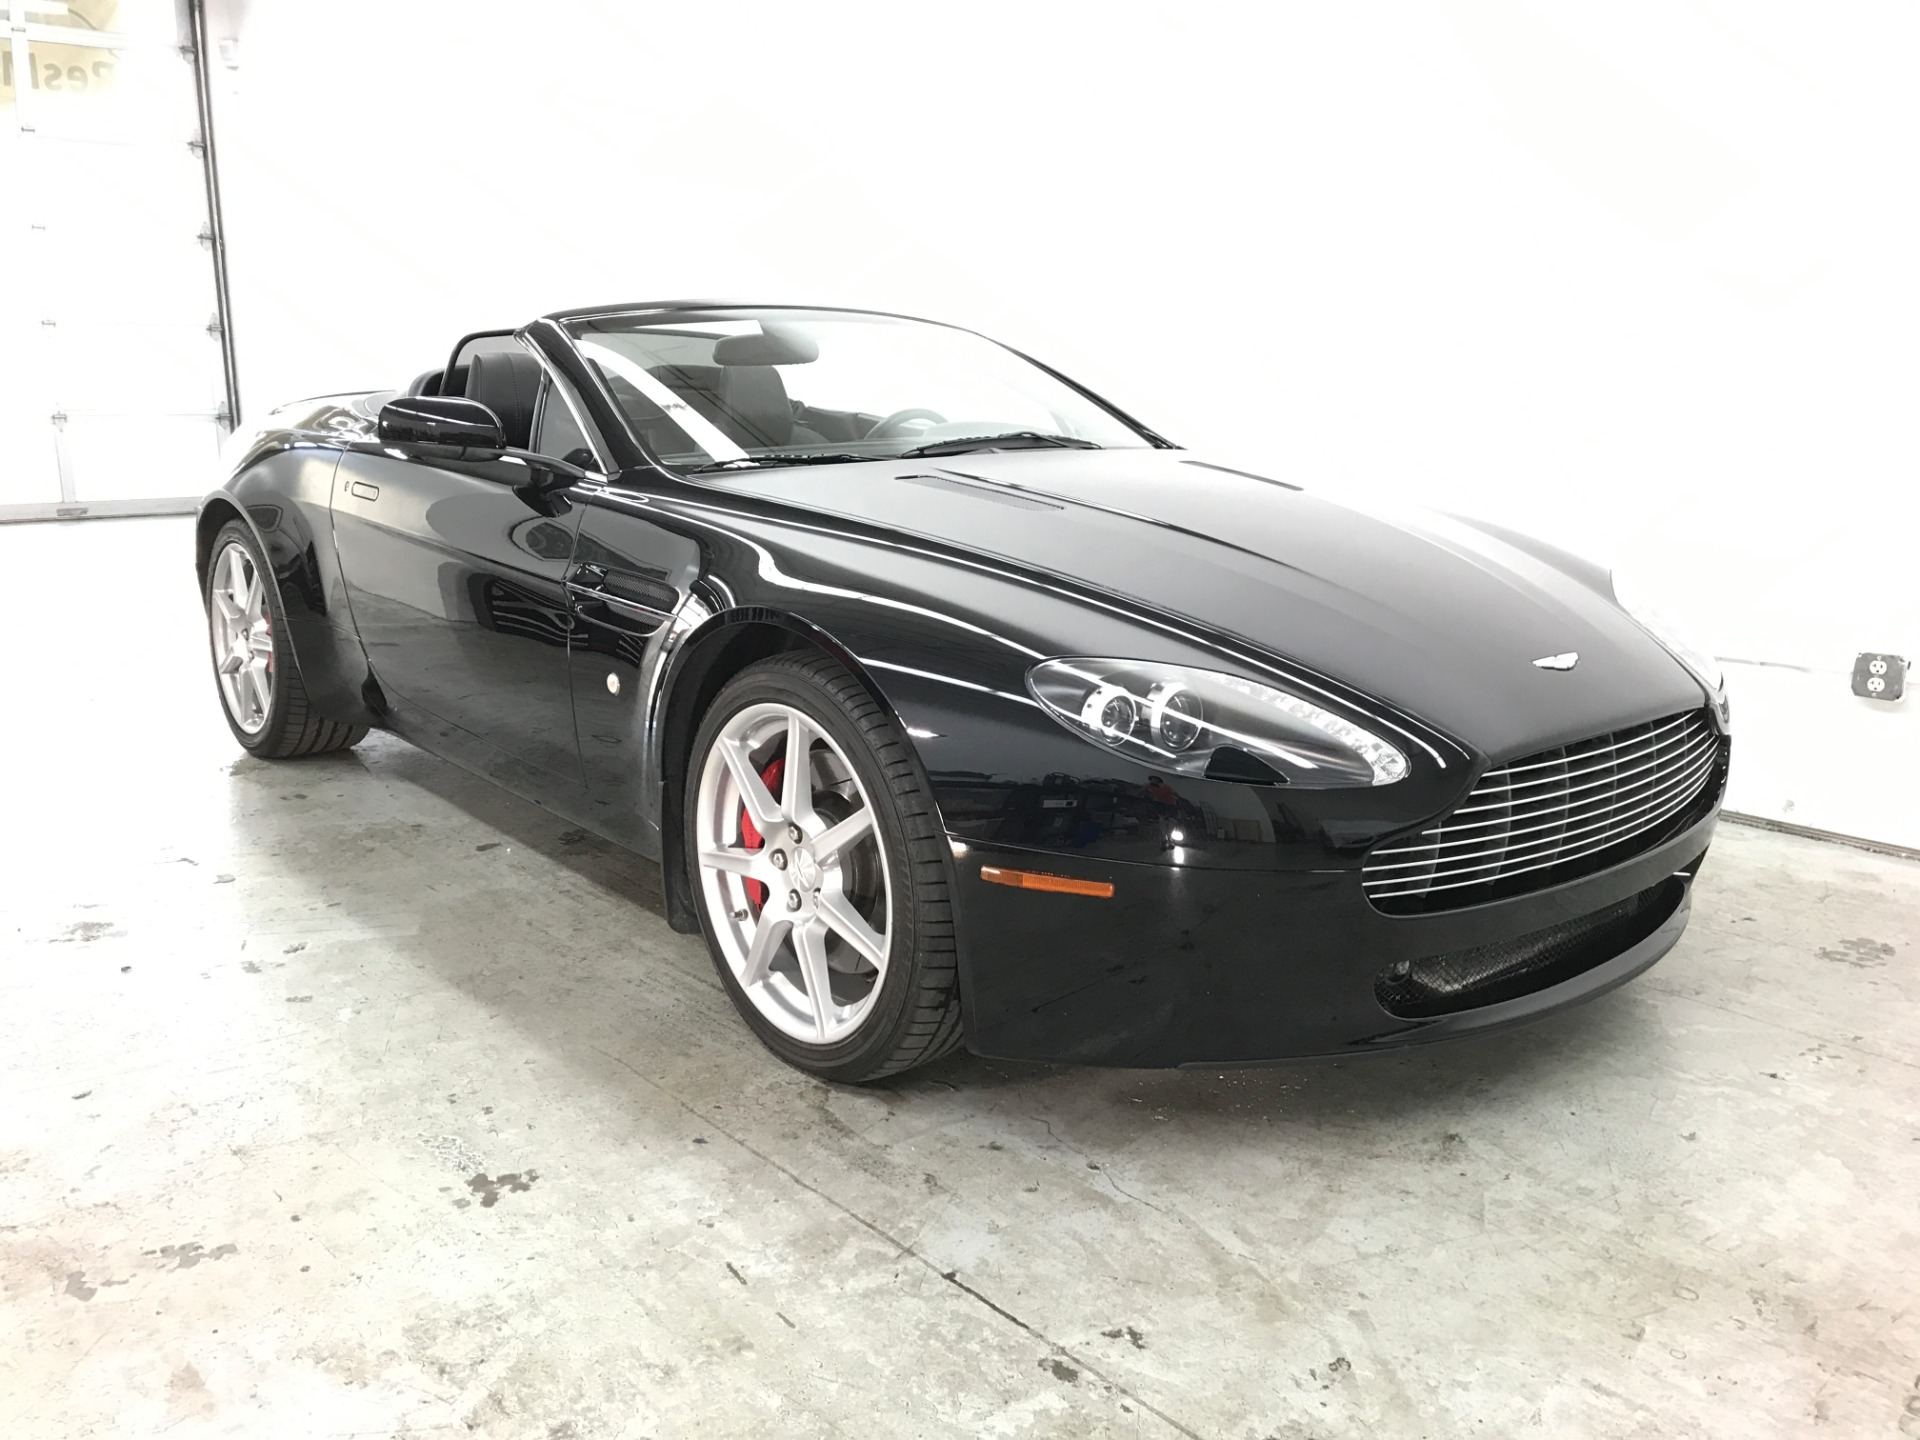 Car Fax Used Cars >> 2008 Aston Martin V8 Vantage Roadster Stock # 38 for sale near Mountain View, CA | CA Aston ...